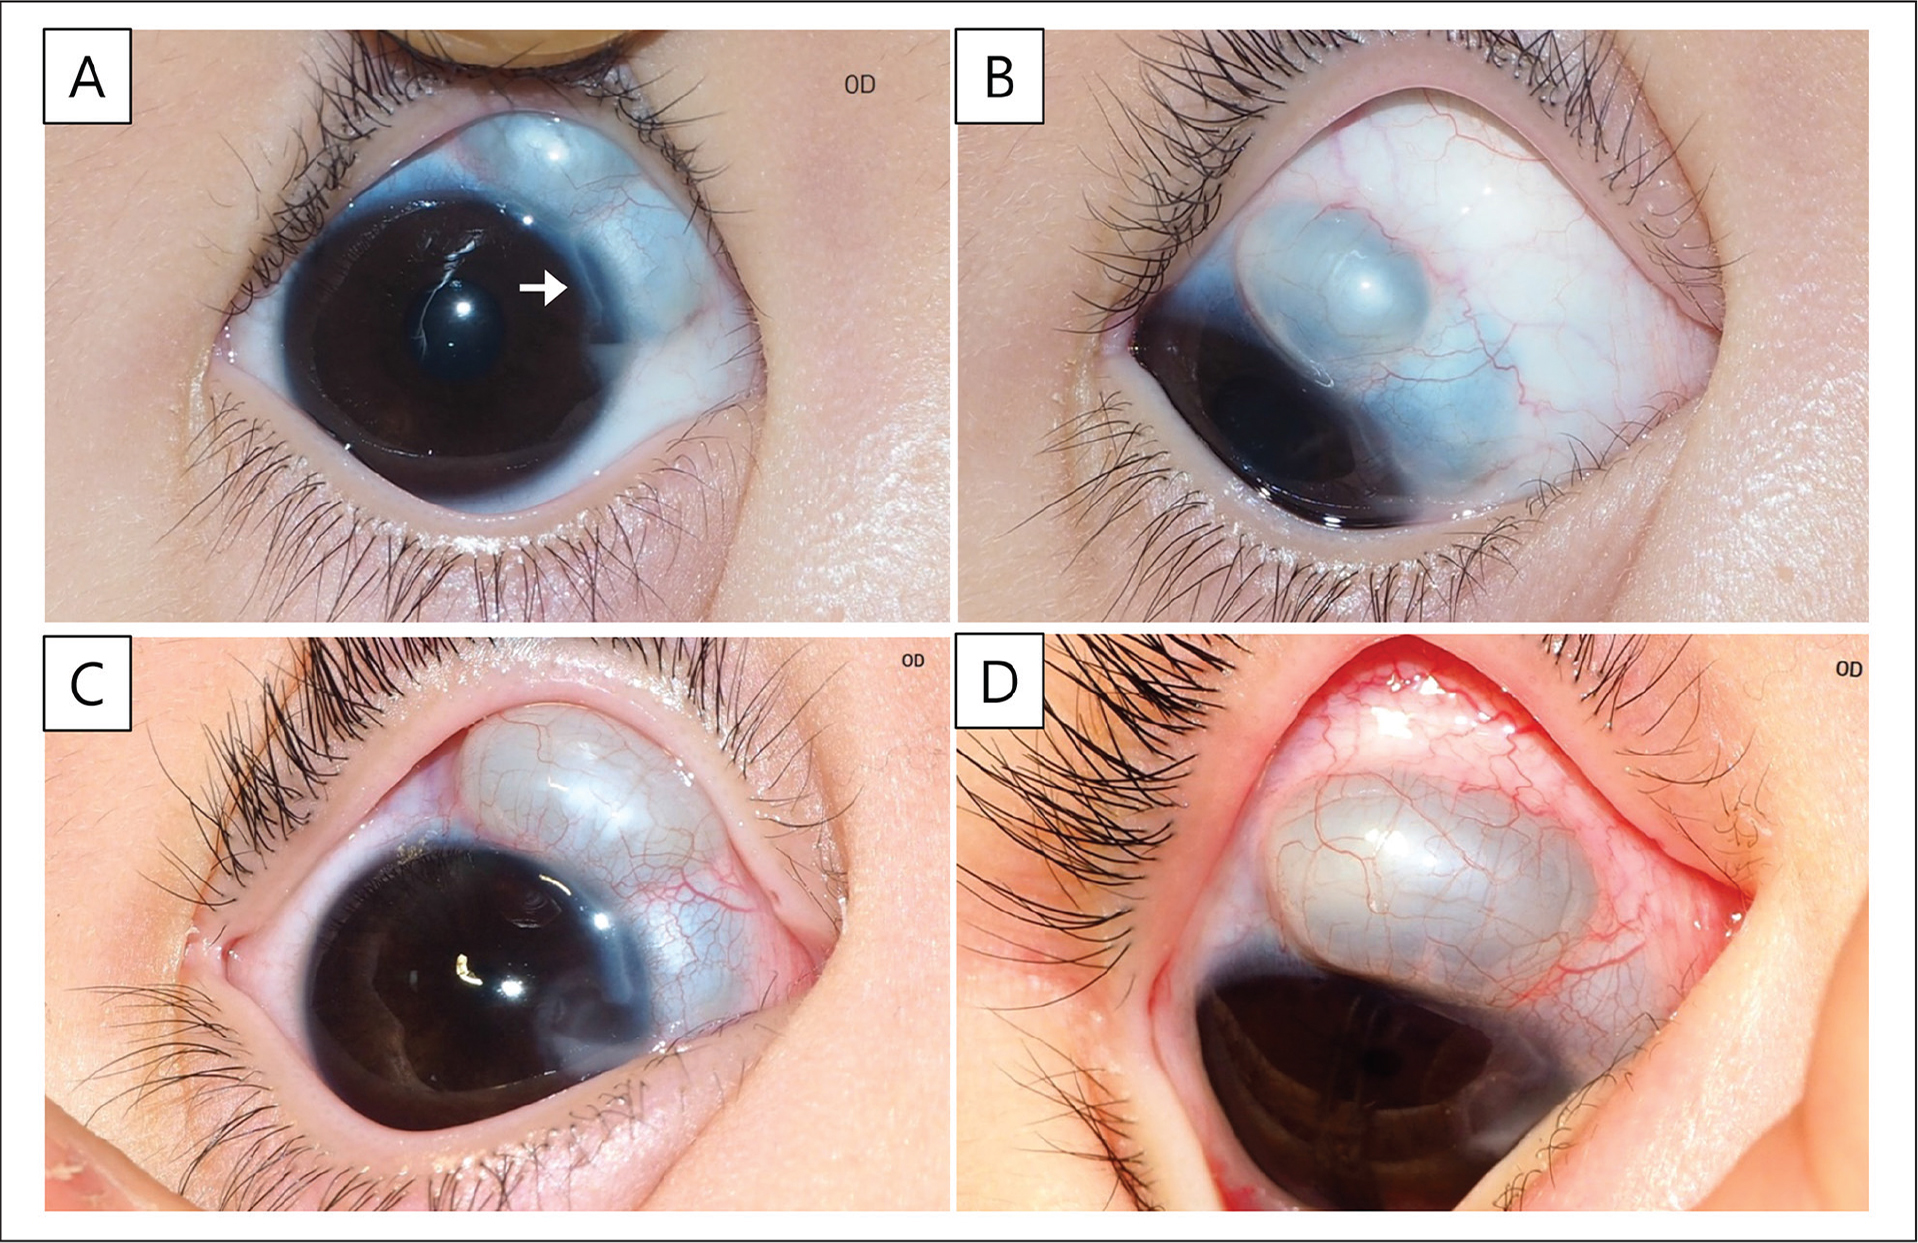 (A and B) Anterior segment photography at presentation. Scleral cystic mass and scleromalacia were observed at the superonasal limbal sclera. Intracorneal cyst with fluid collection was also present at the nasal cornea with an intrastromal connecting tract between scleral and corneal cysts (white arrow). (C and D) Anterior segment photography 9 months later. Both scleral and intracorneal cysts markedly enlarged.